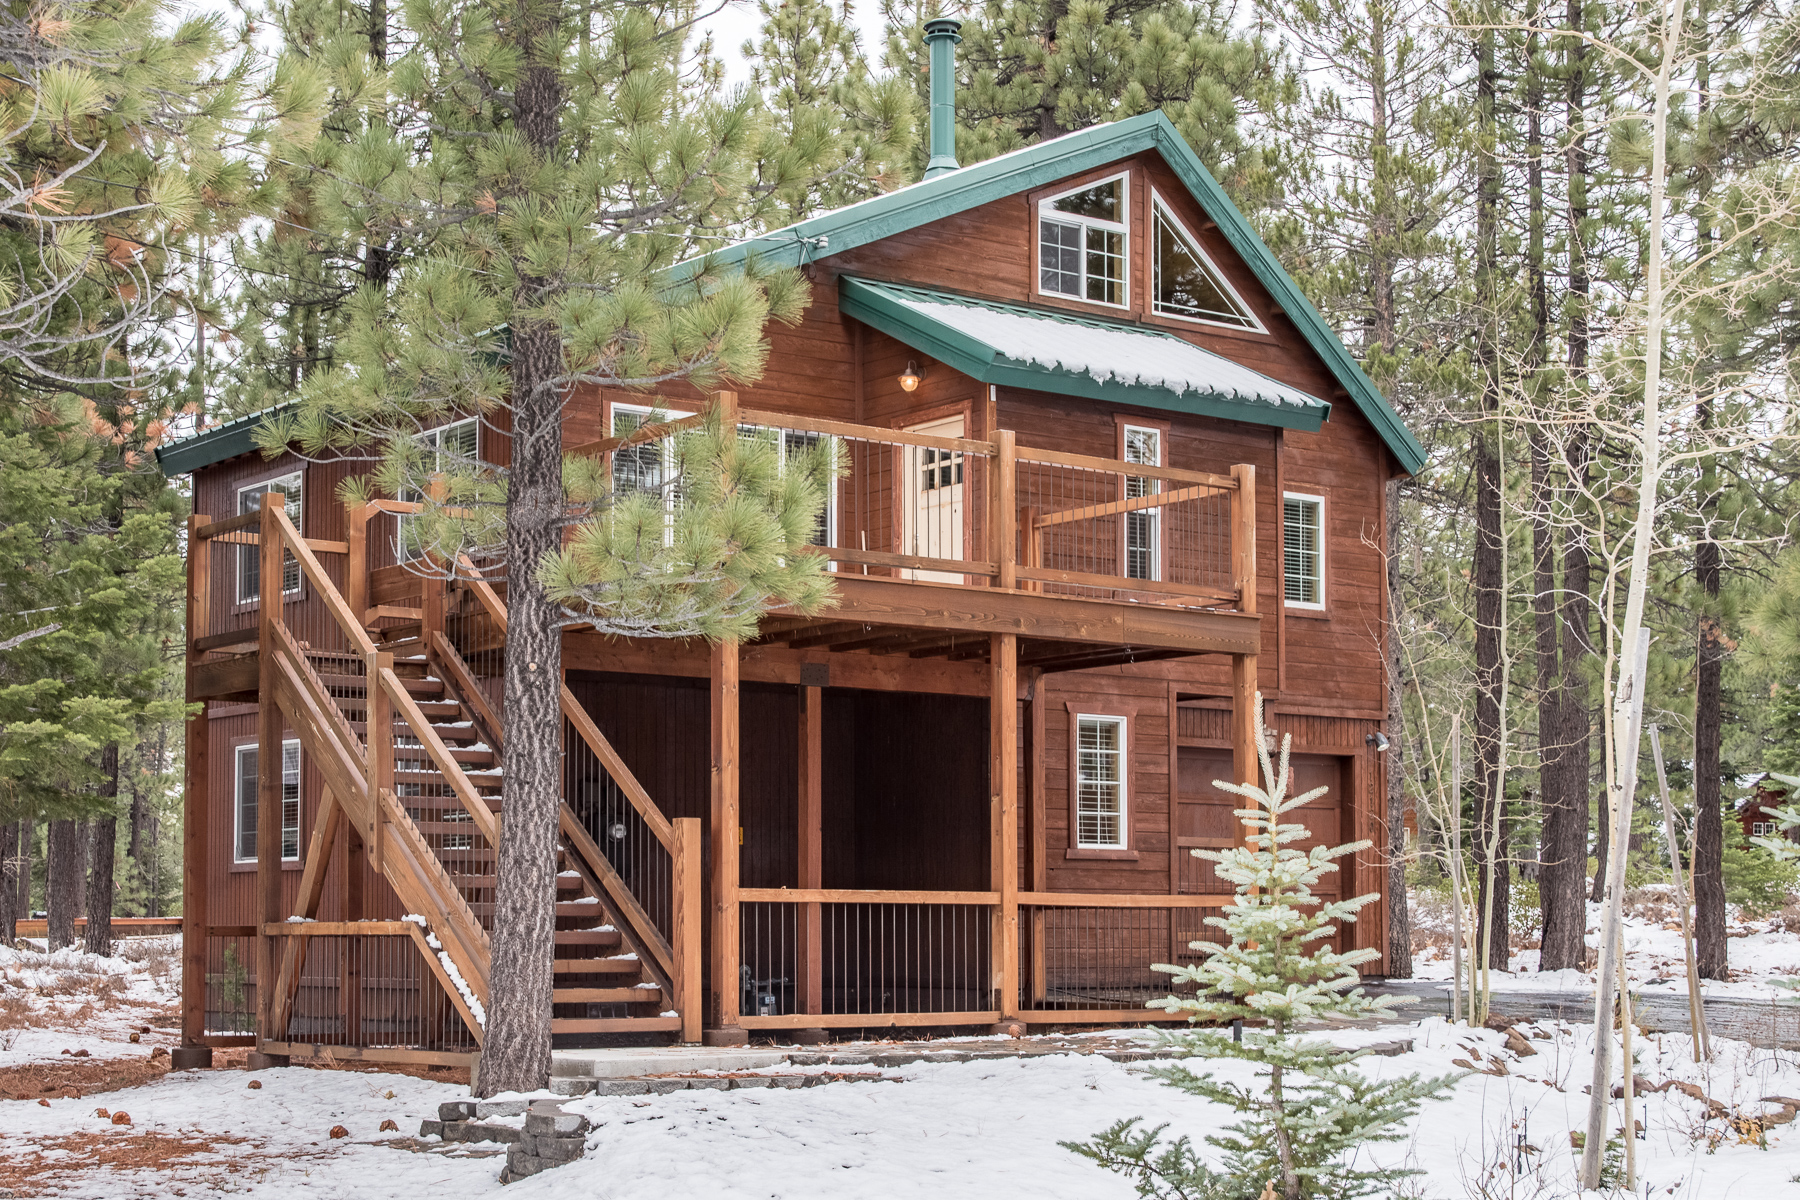 cottages cottage road booking com home us ca truckee henness hotel vacation